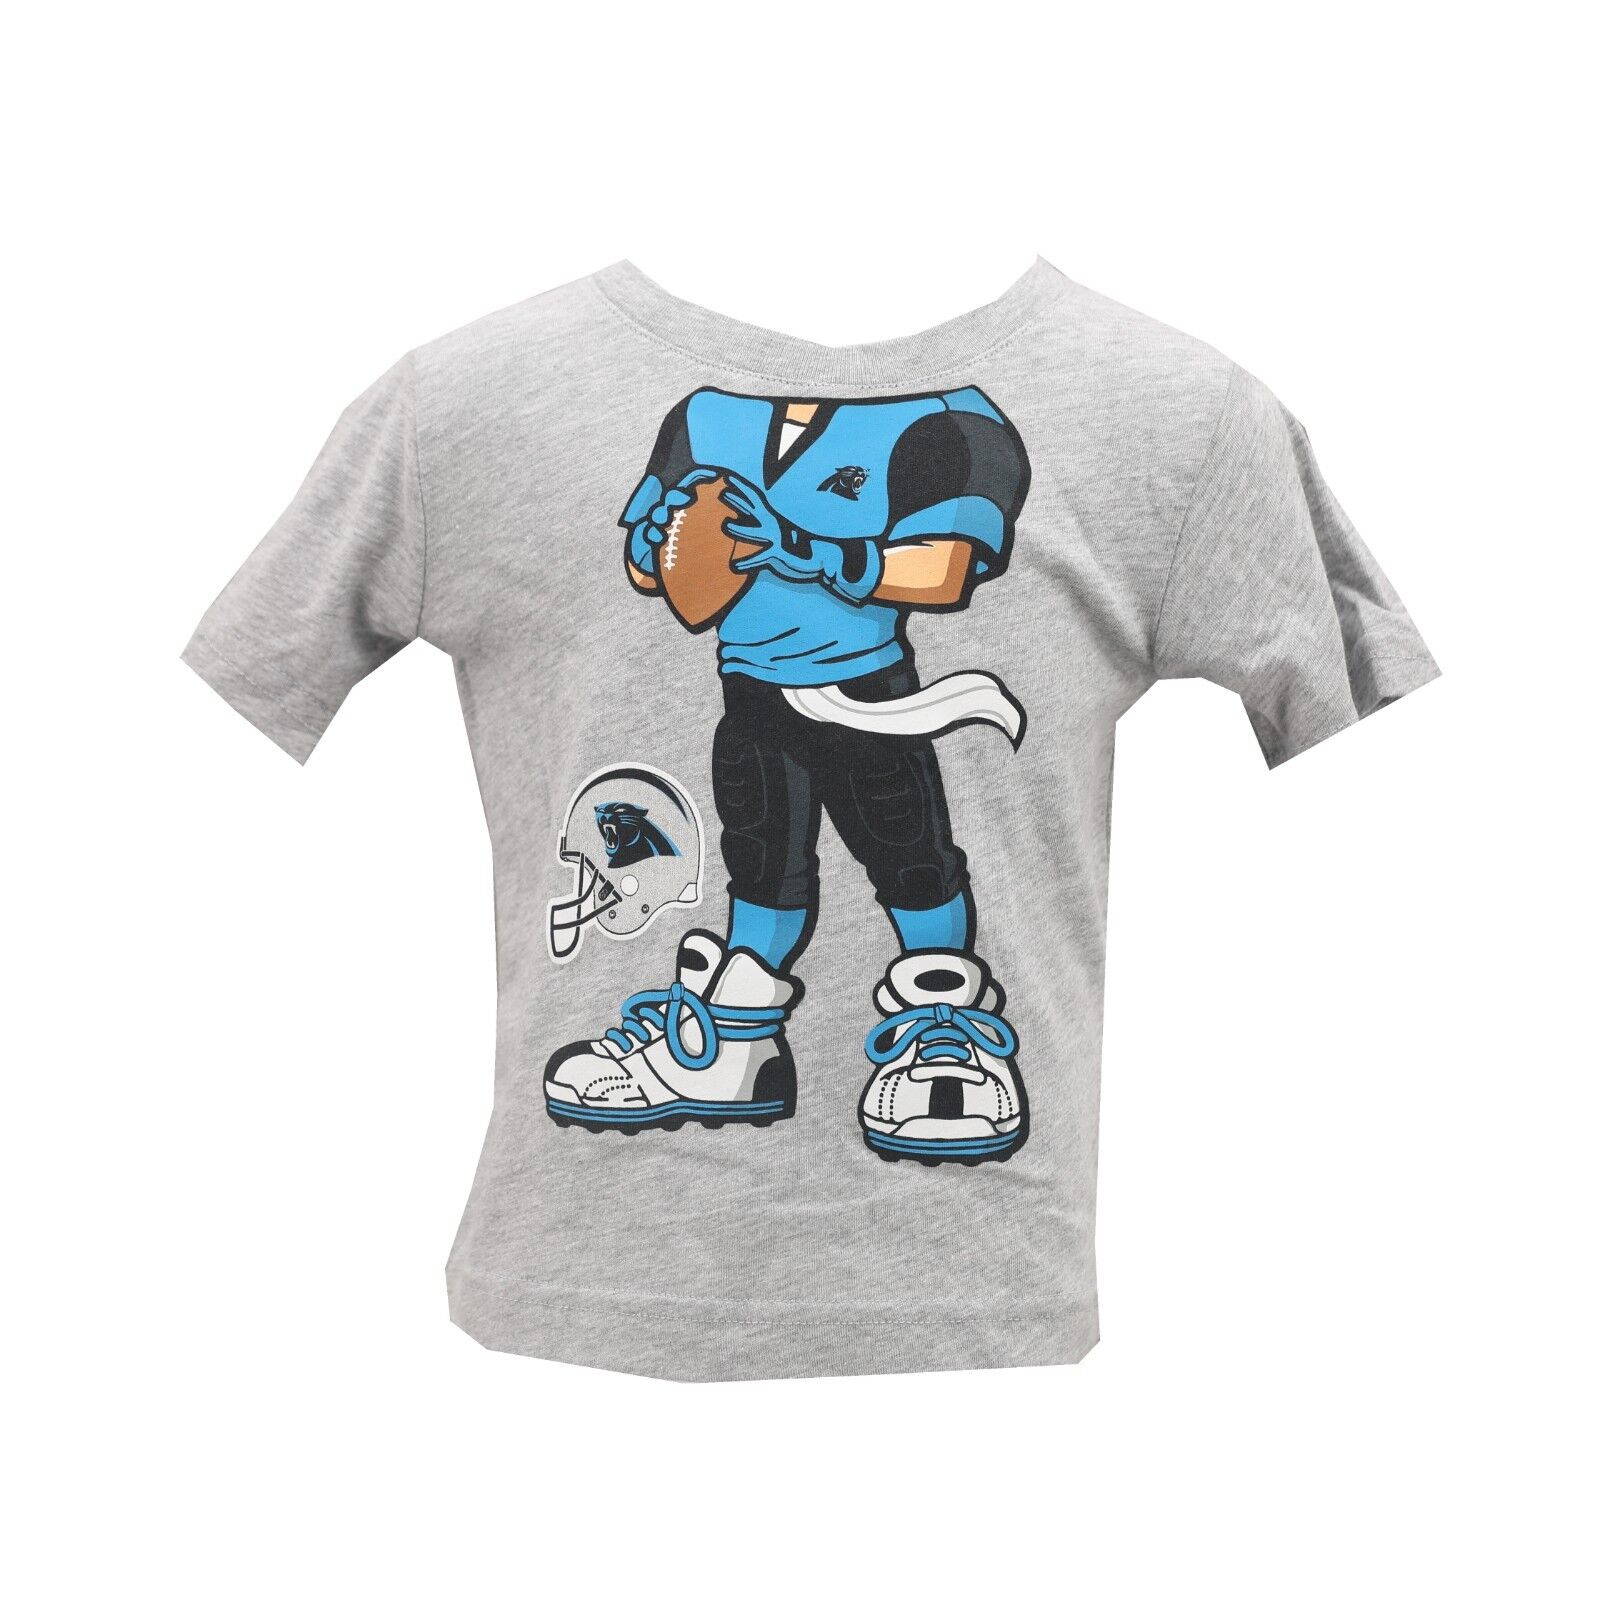 online retailer ca4c3 4671d Details about Carolina Panthers Official NFL Apparel Infant & Toddler Size  T-Shirt New Tags